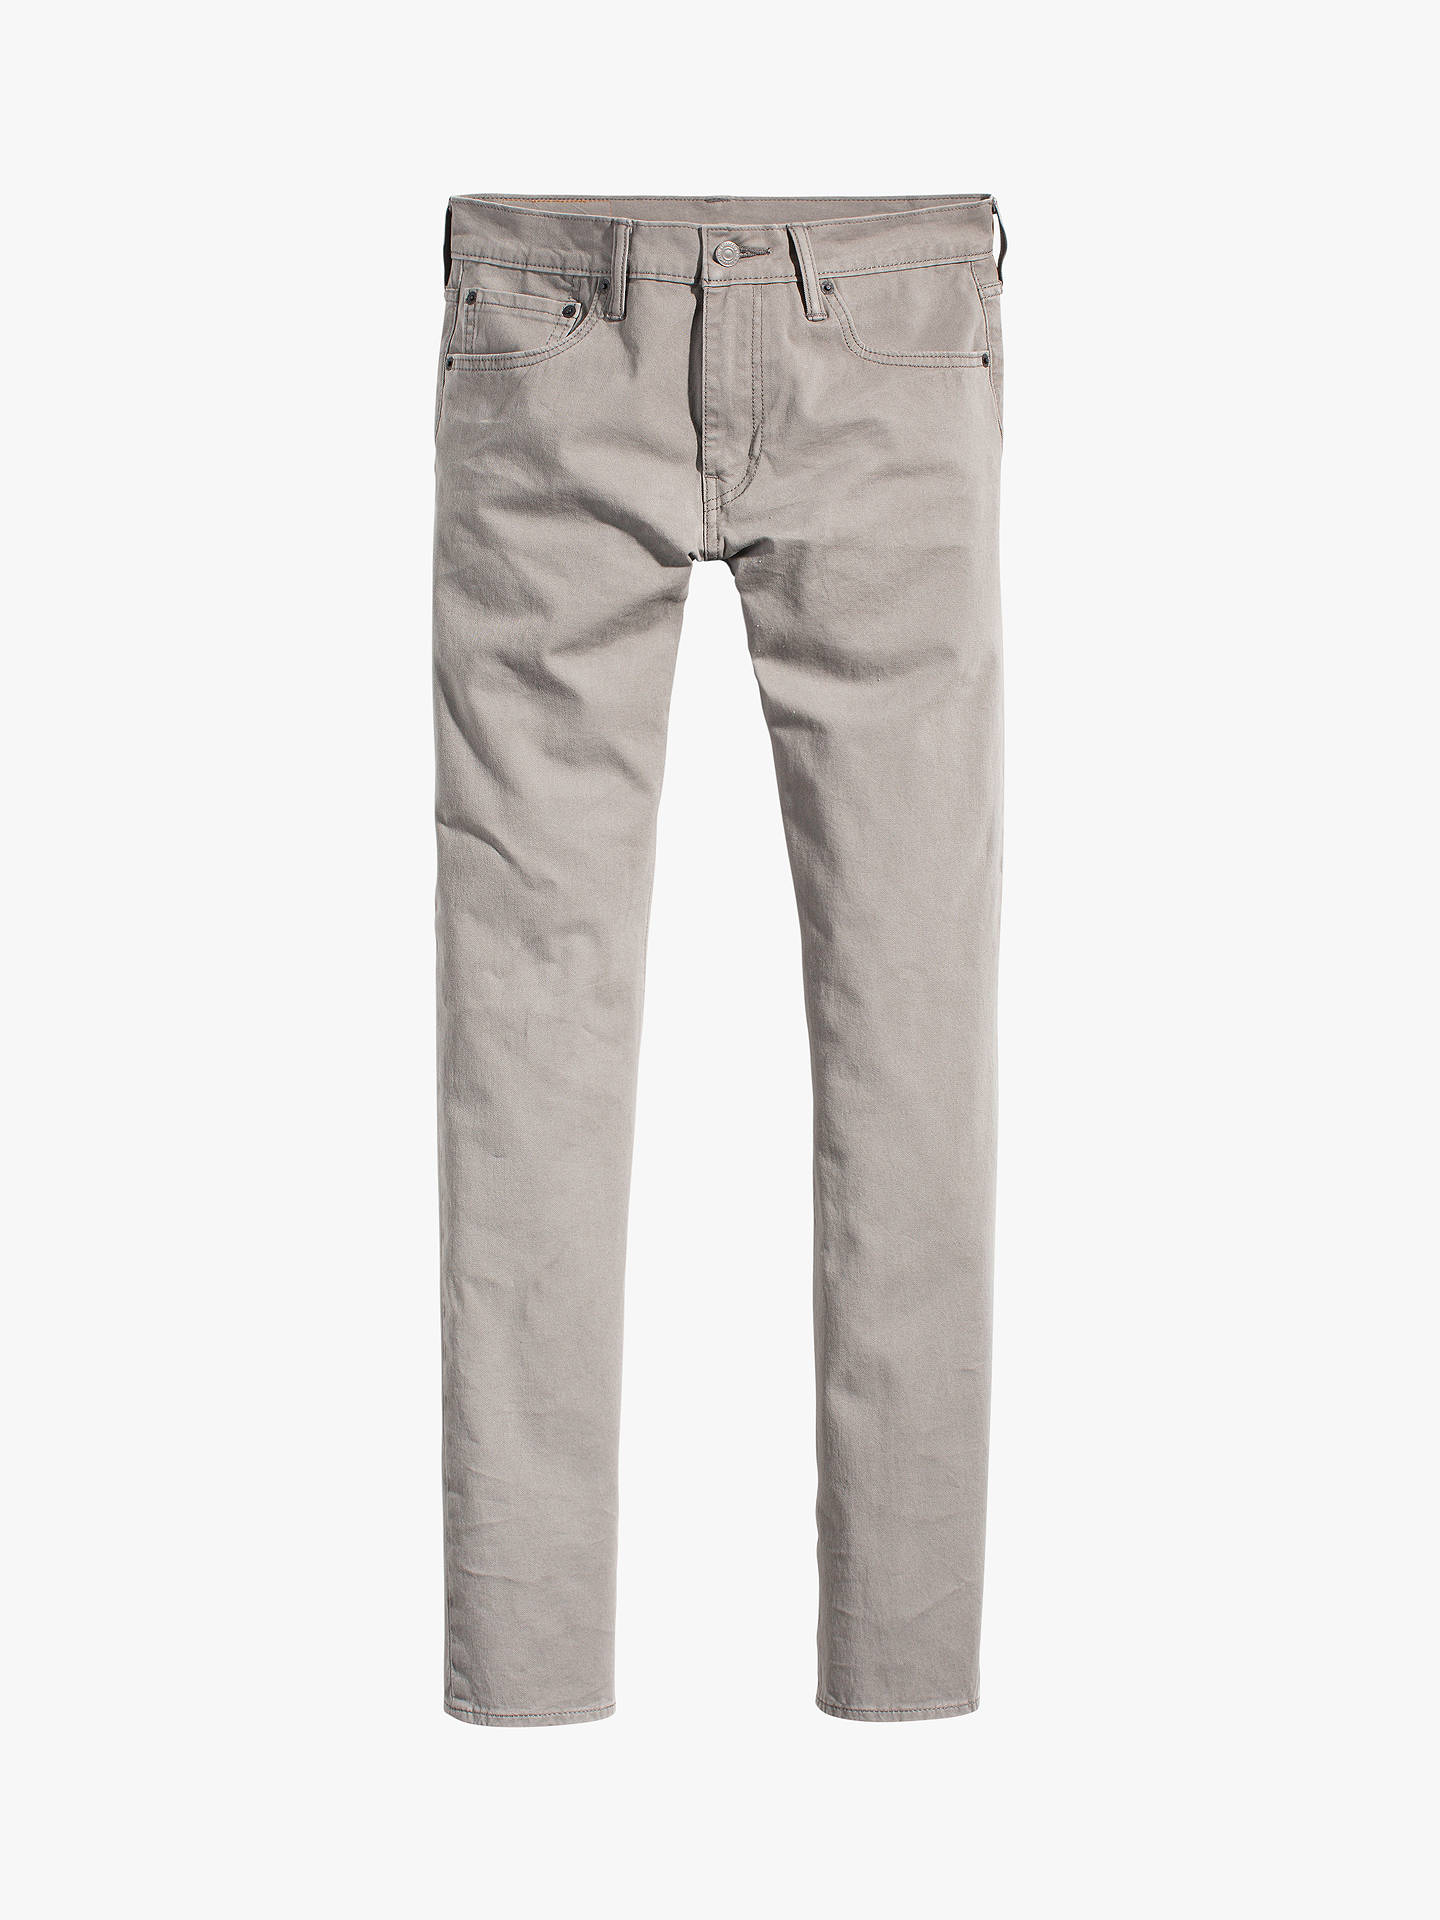 1a58db4381a ... Buy Levi's 511 Slim Fit Bi Stretch Jeans, Steel Grey, 34L Online at  johnlewis